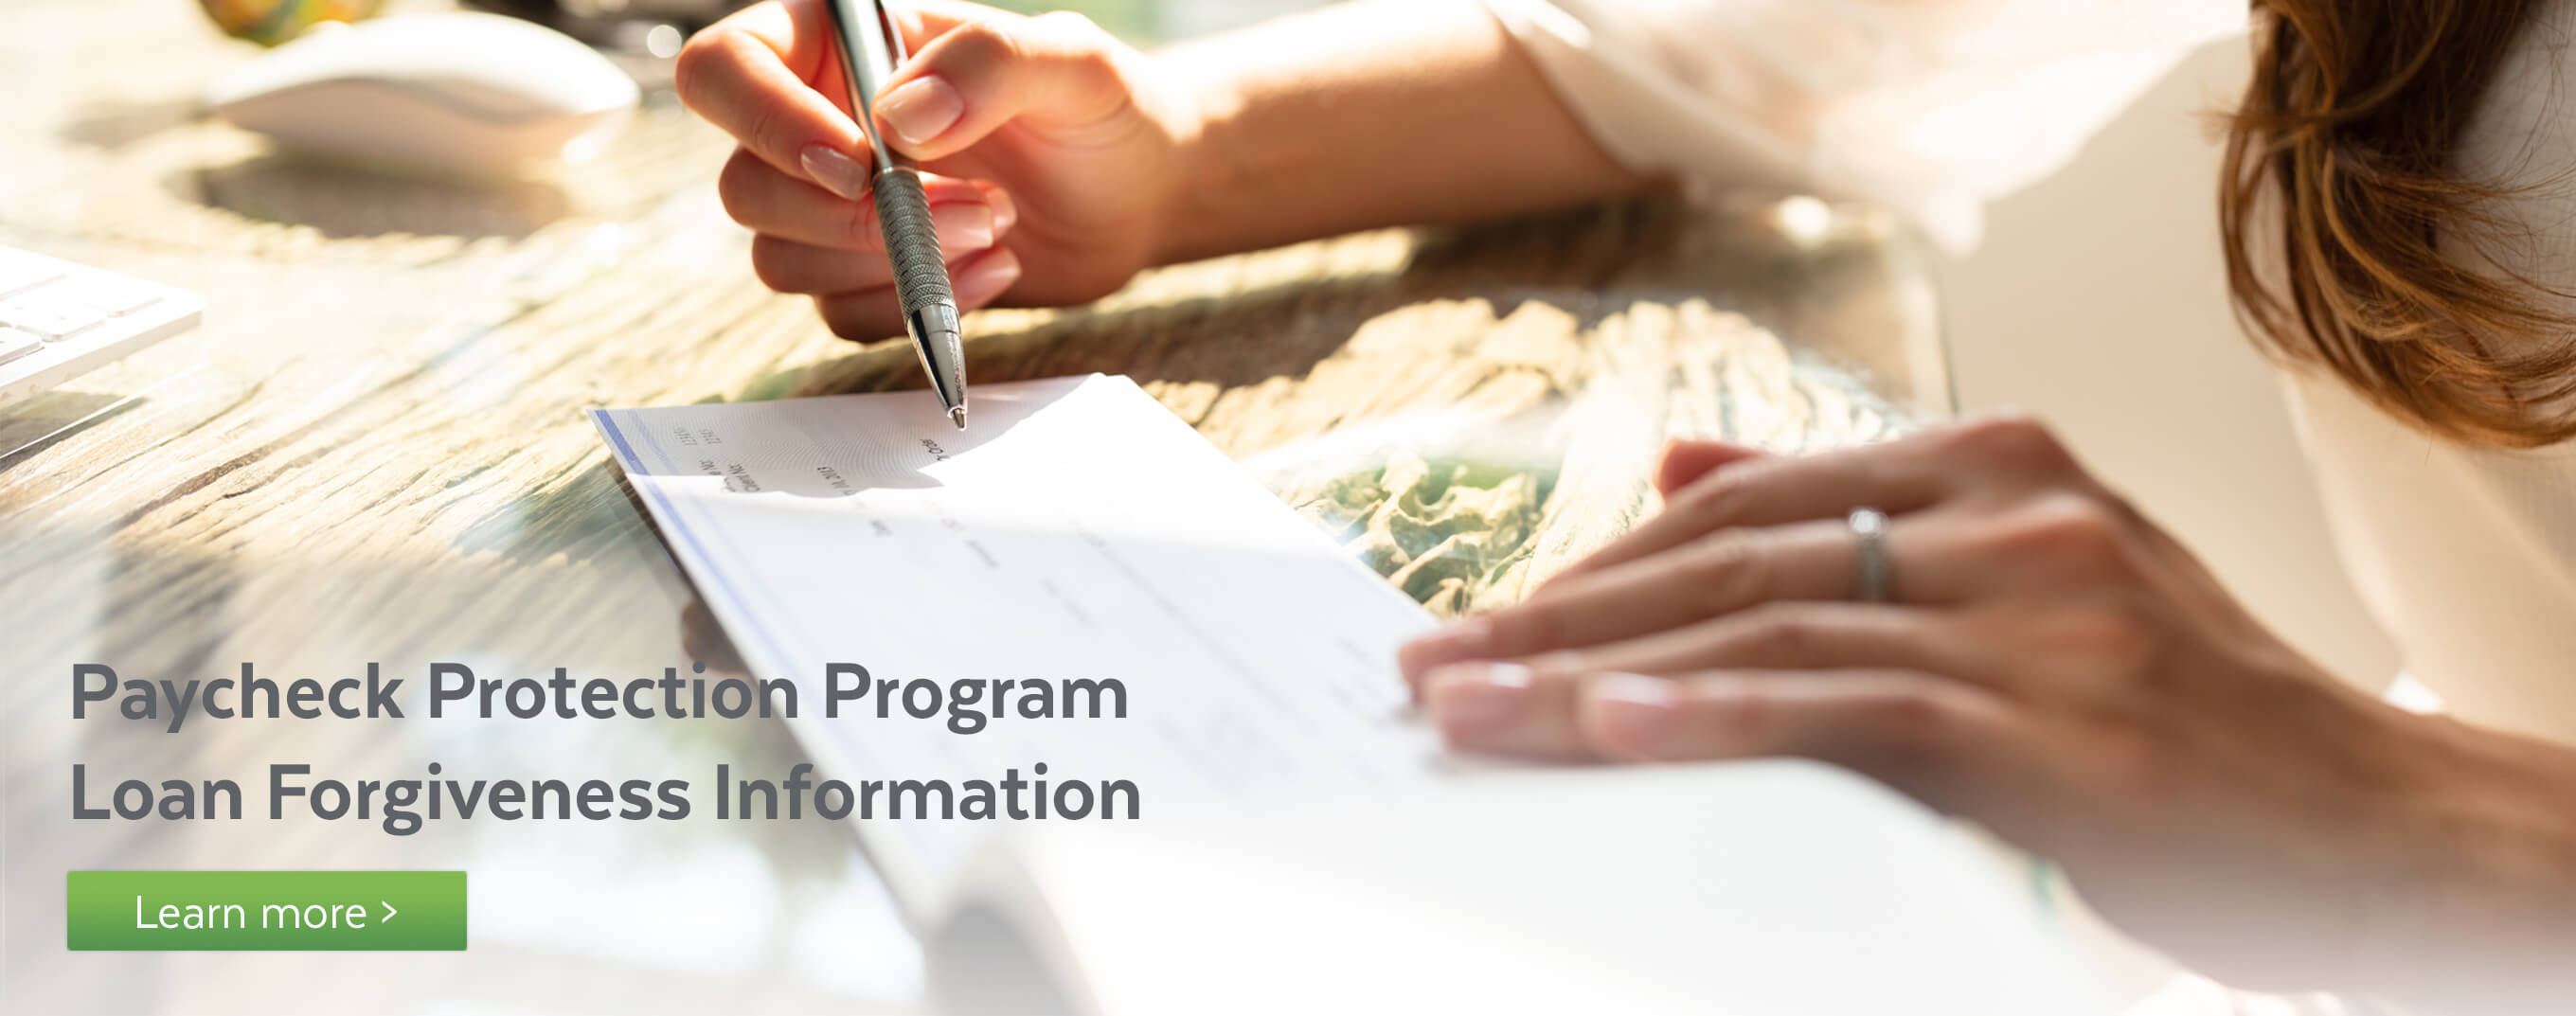 Paycheck Protection Program loan forgiveness information.